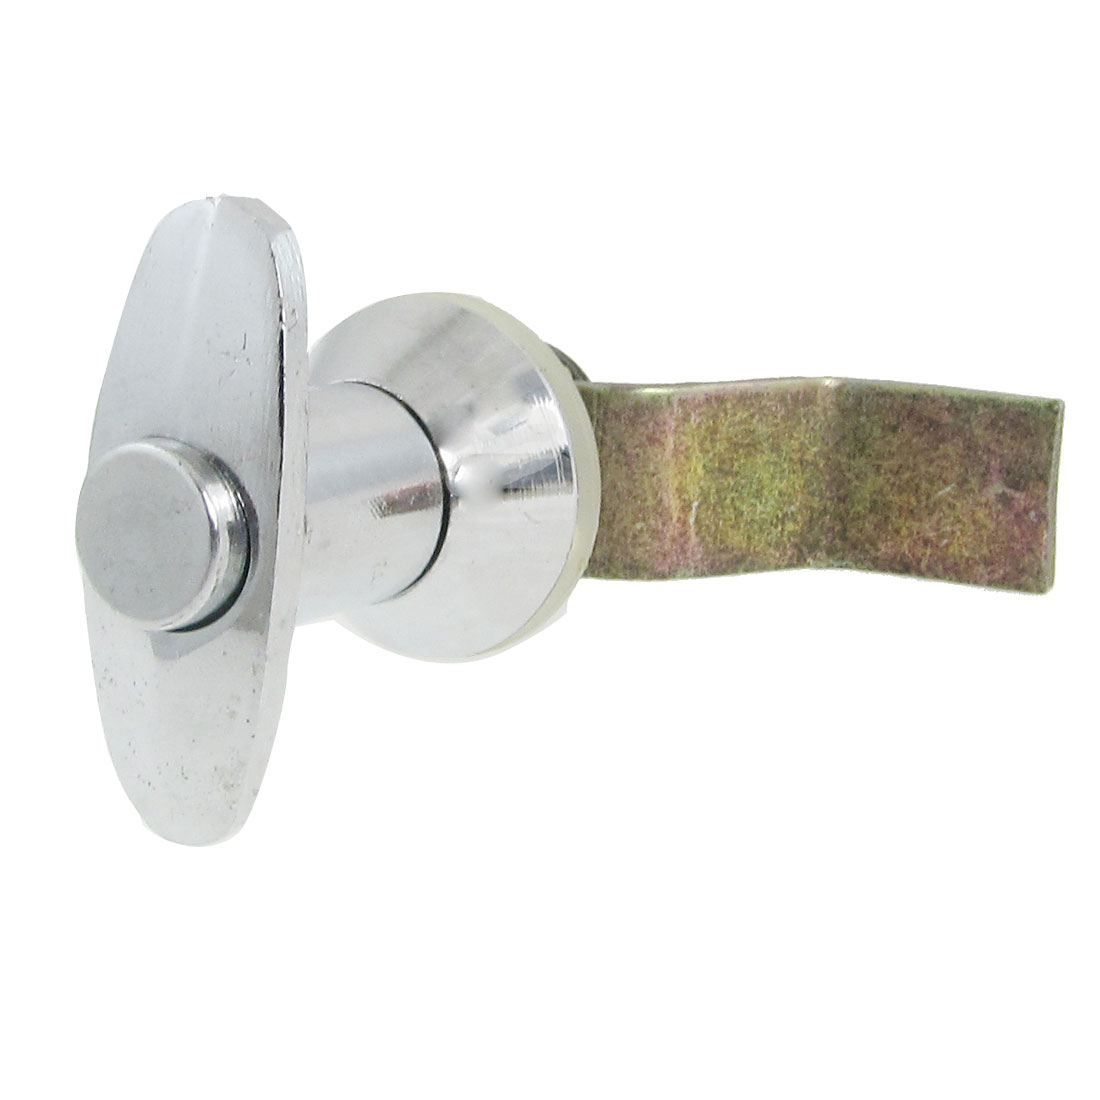 Push Button Rotate Metal Keyless Locking Lock for Cabinet